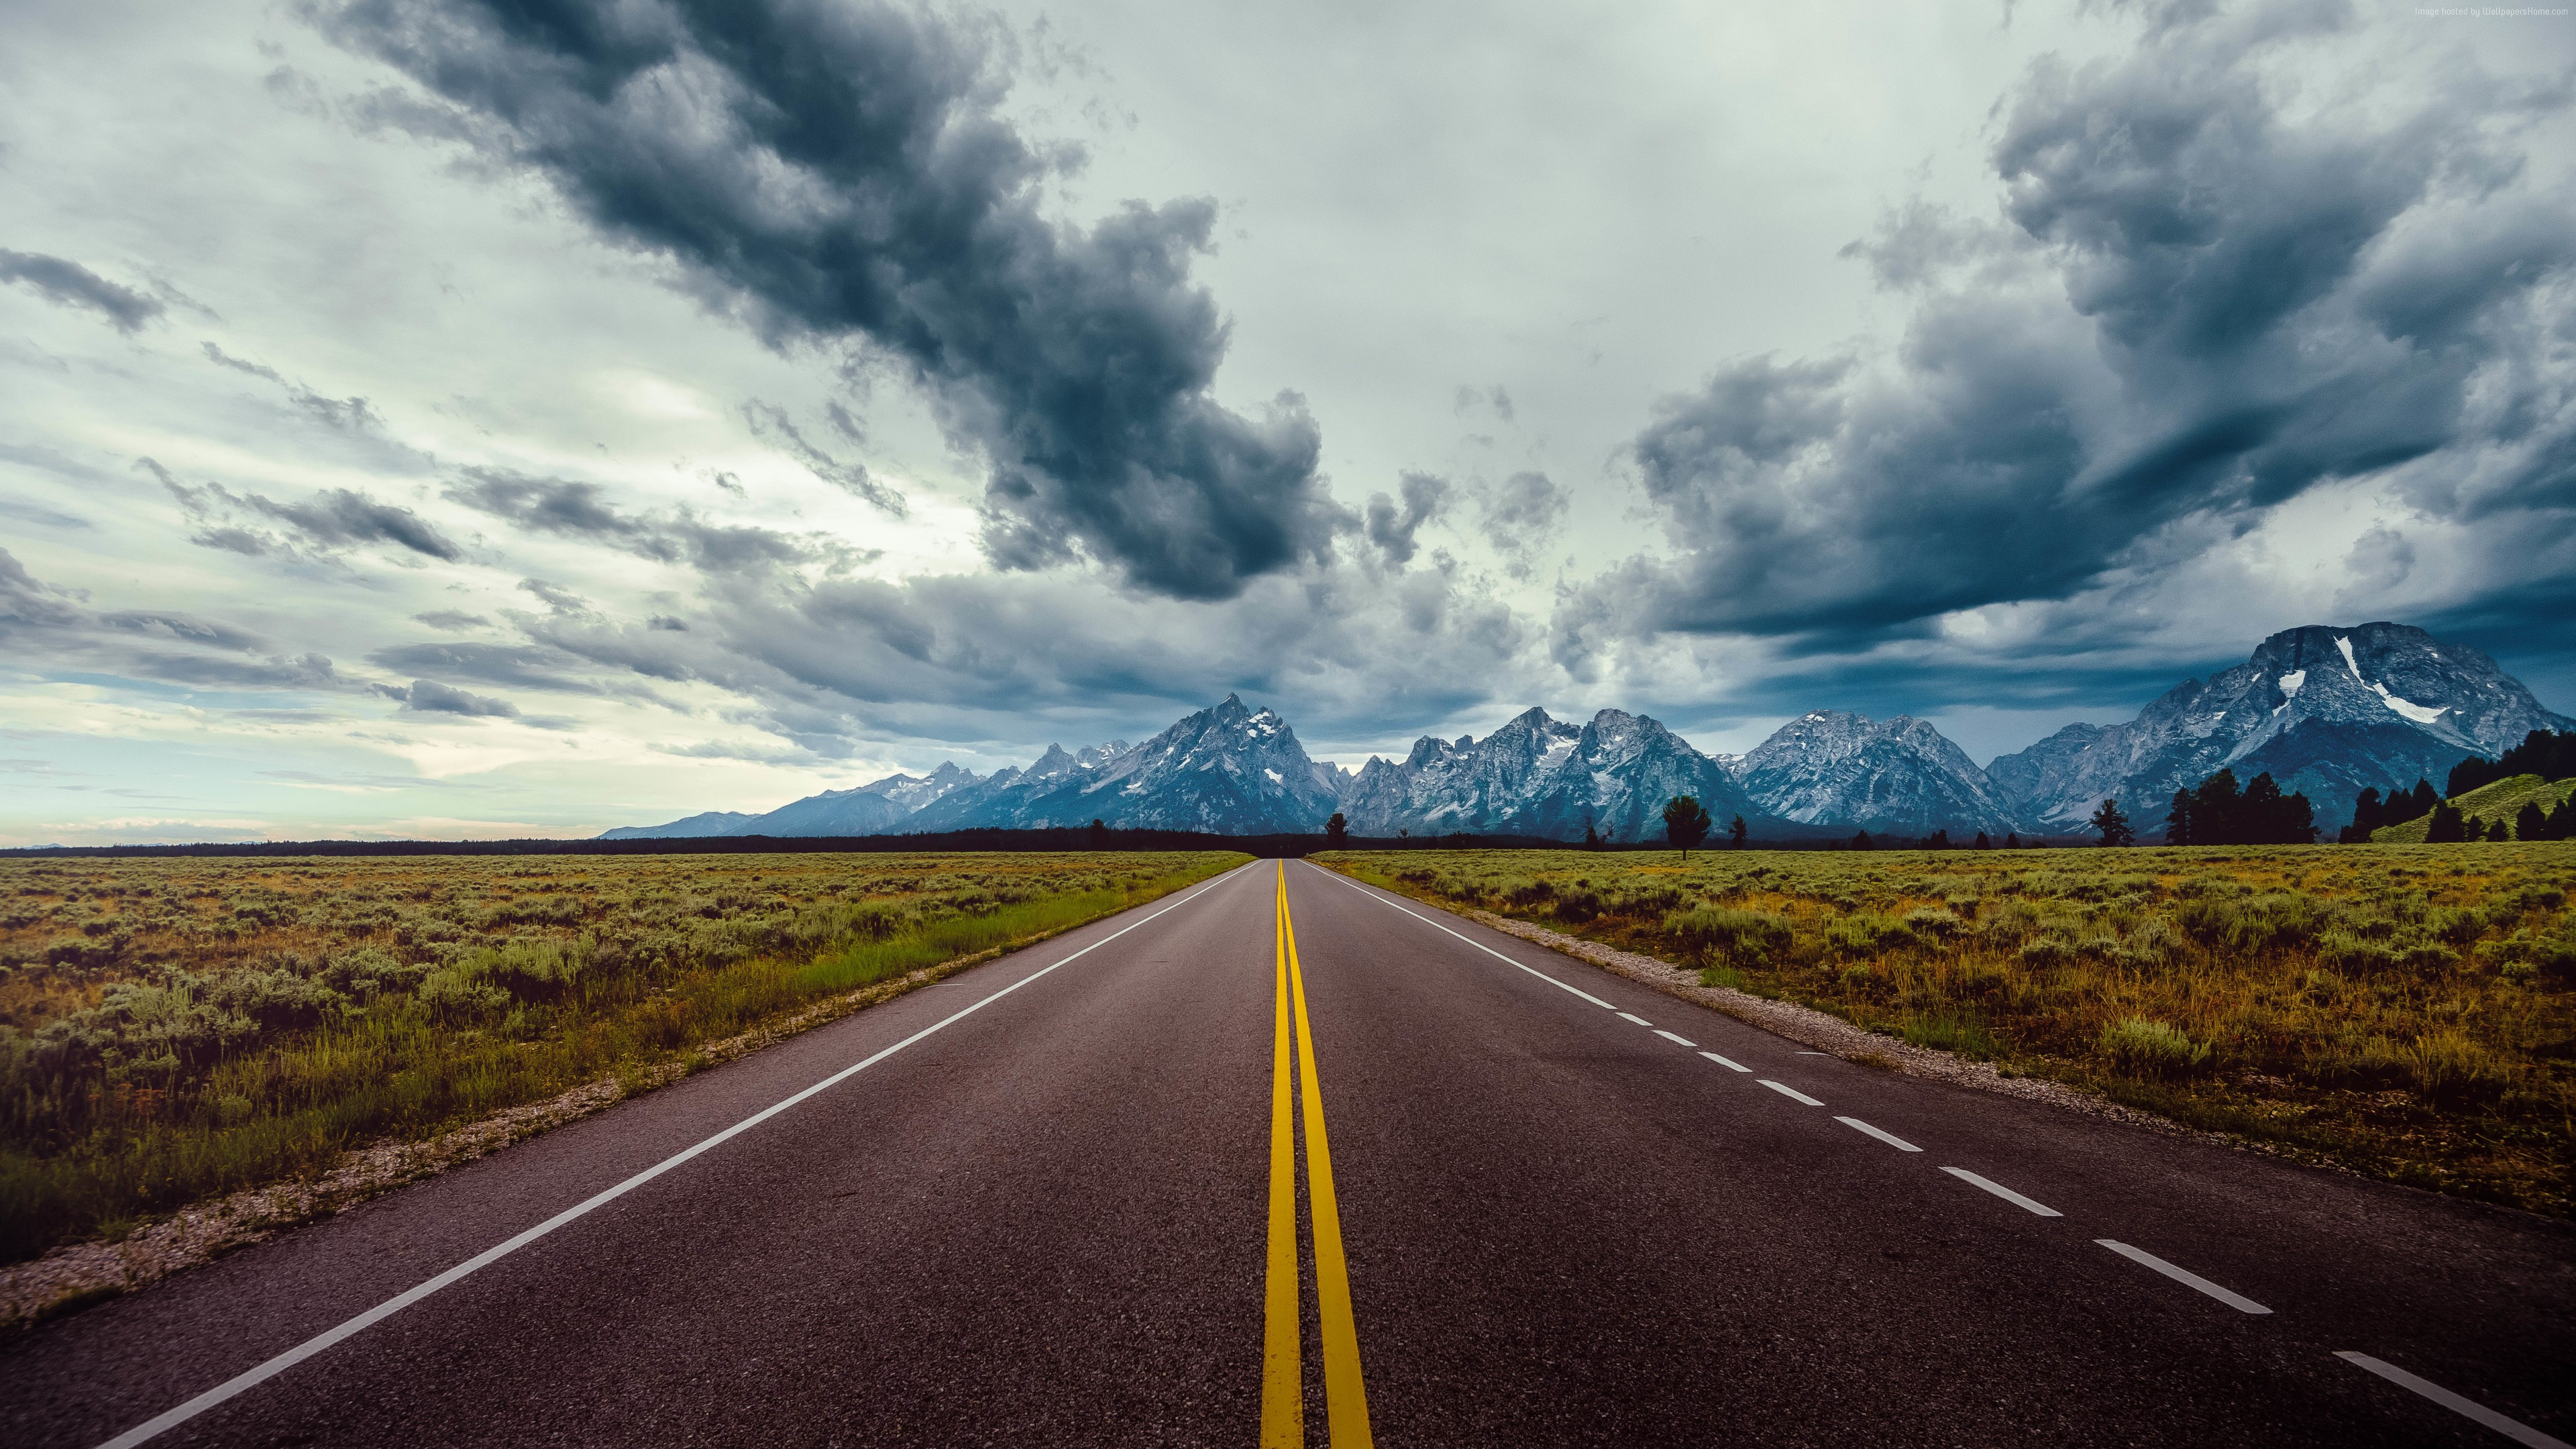 Wallpaper road, sky, clouds, mountains, 8k, Nature